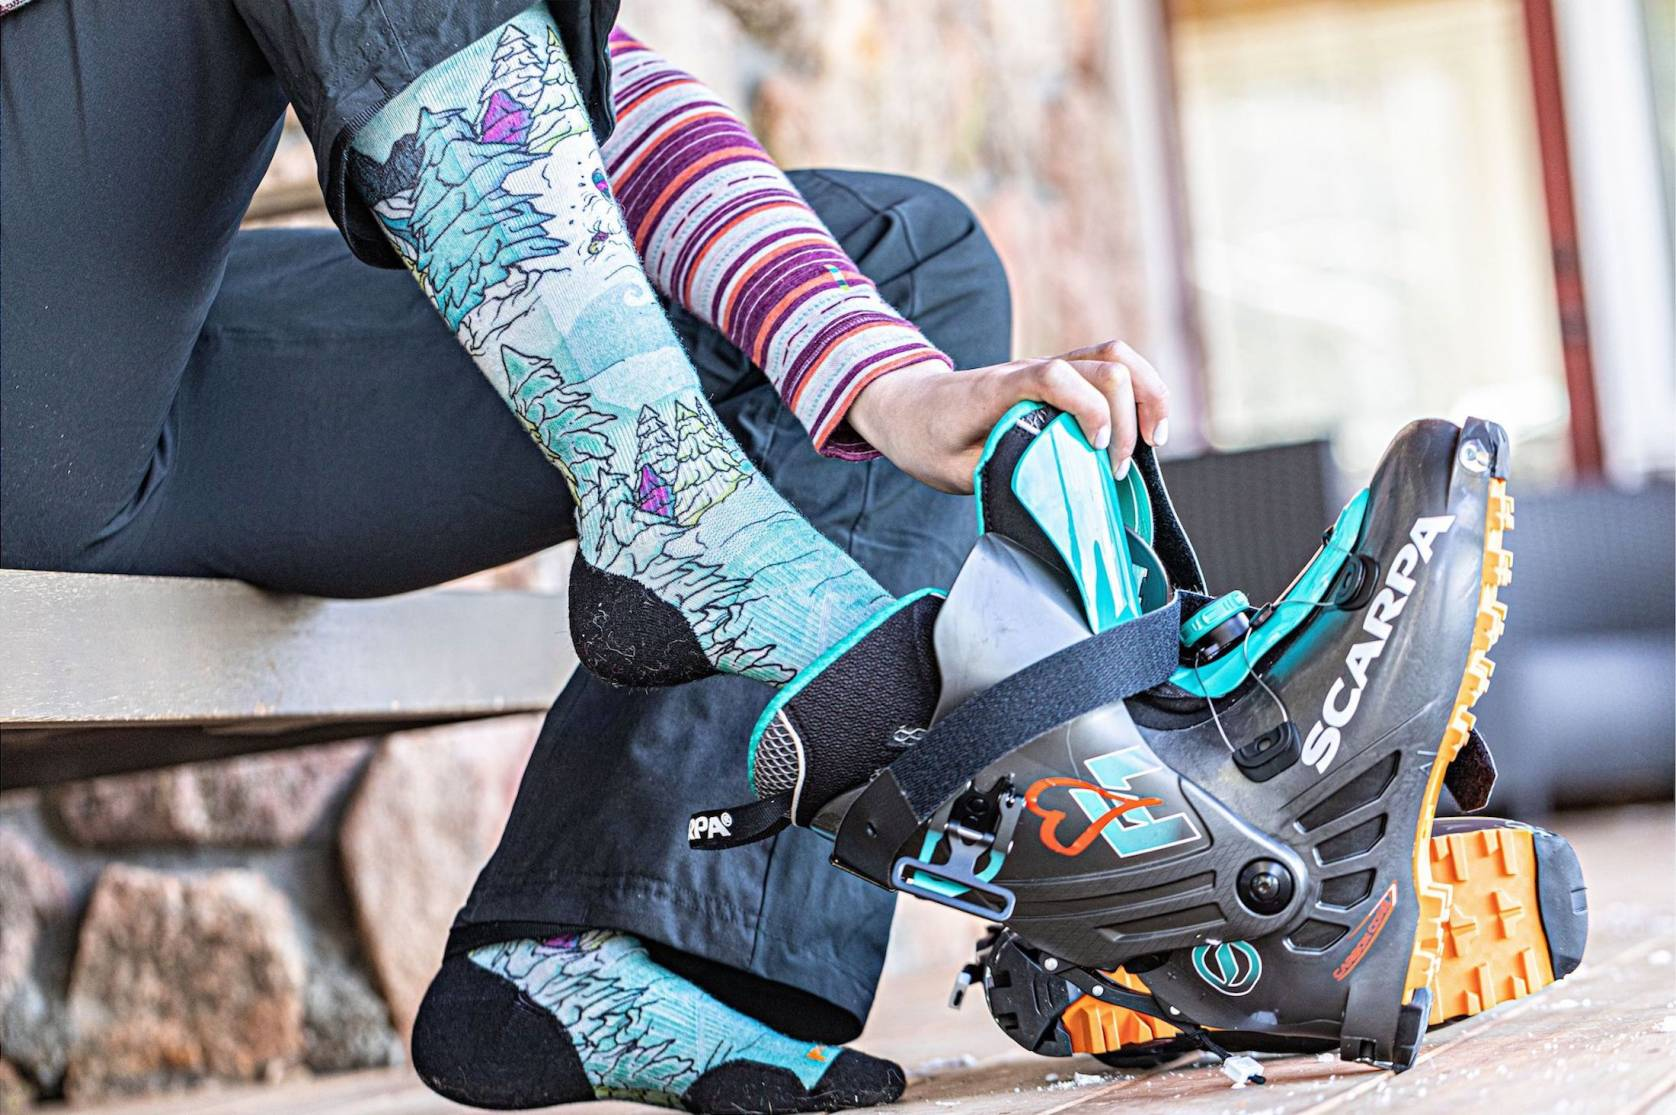 skier putting on Smartwool socks and ski boots